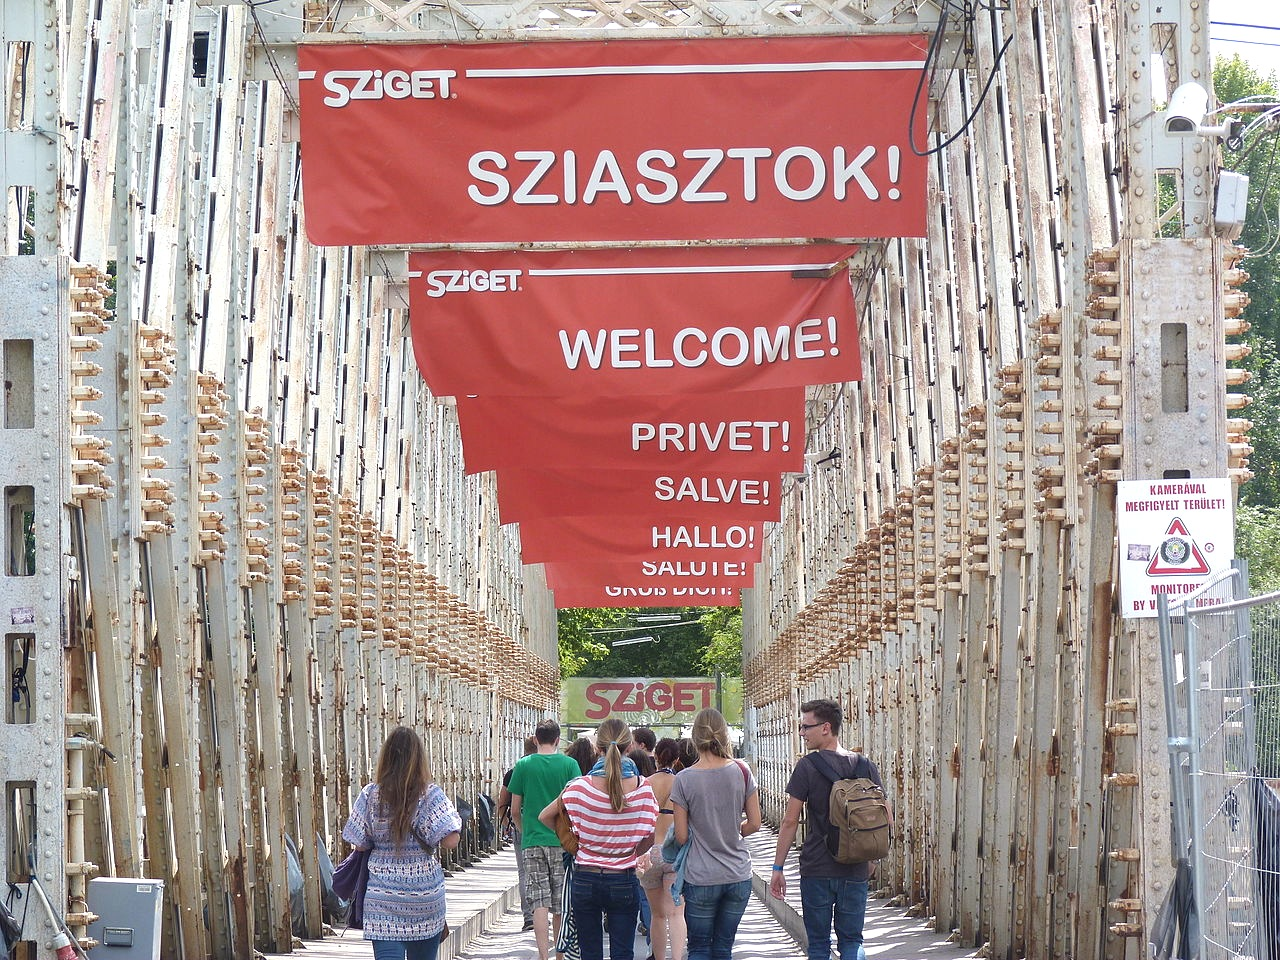 Sziget festival welcome